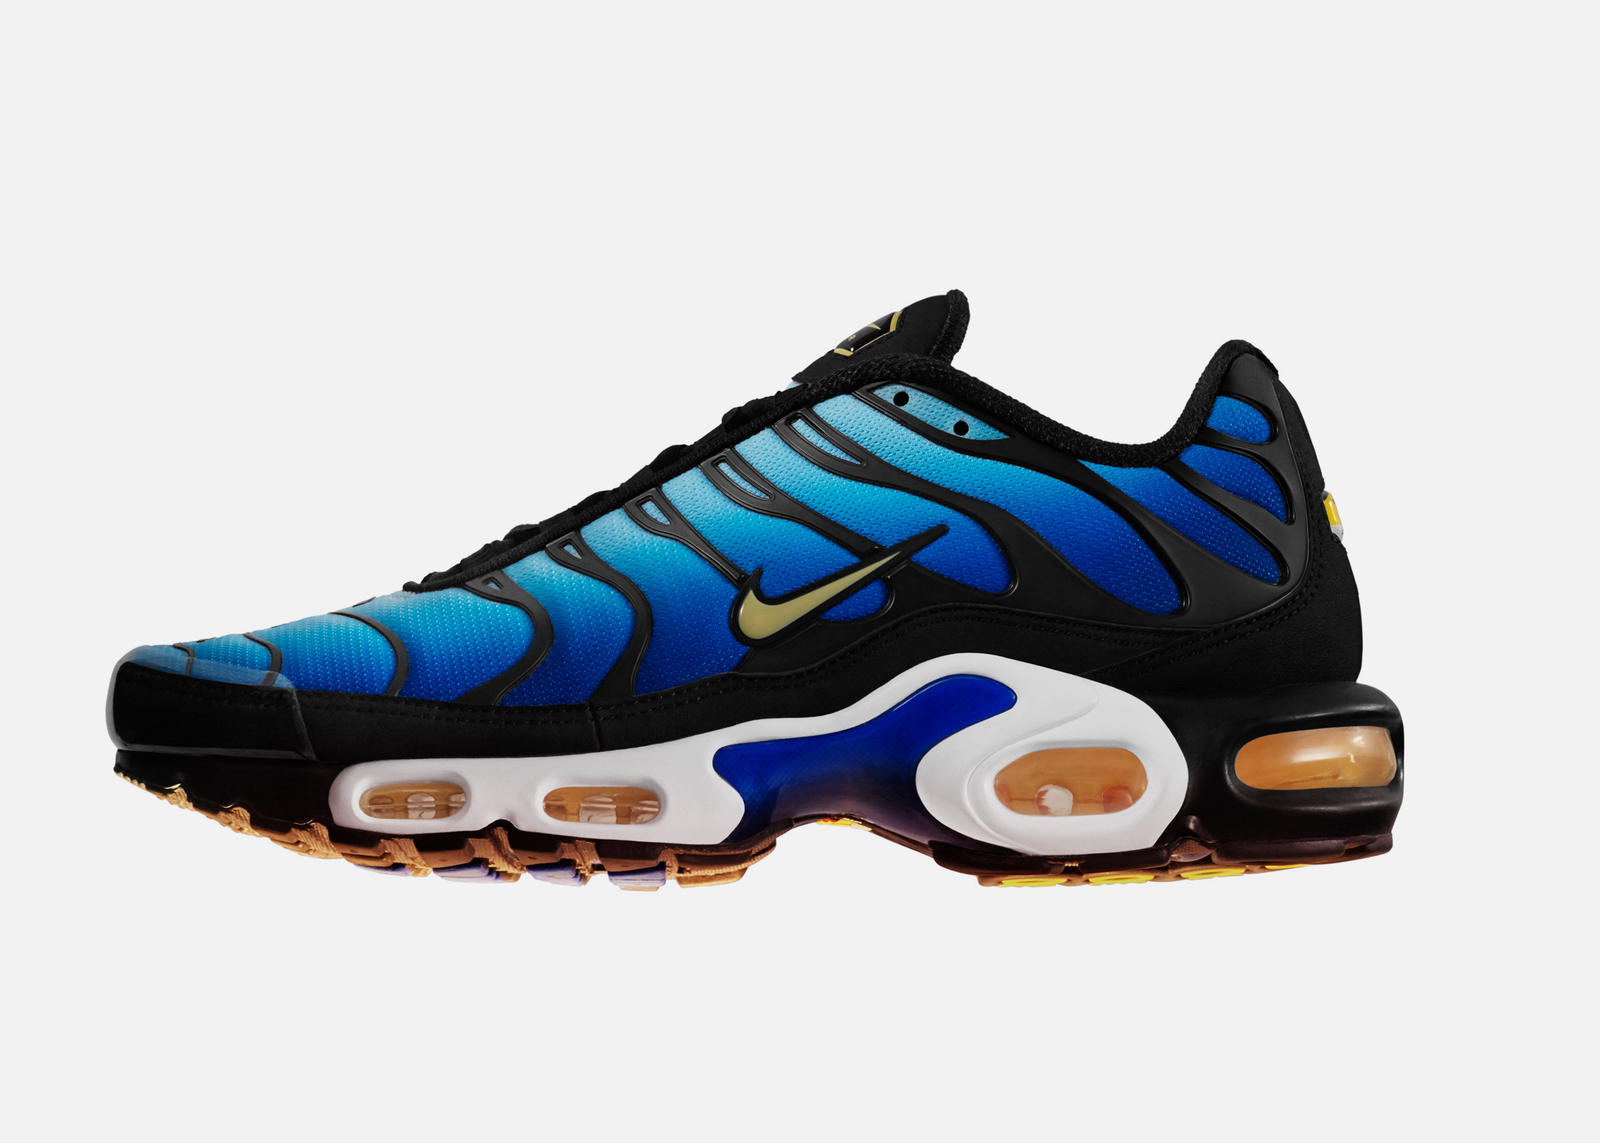 online retailer 2f774 c784a The Untold Story of the Nike Air Max Plus 20